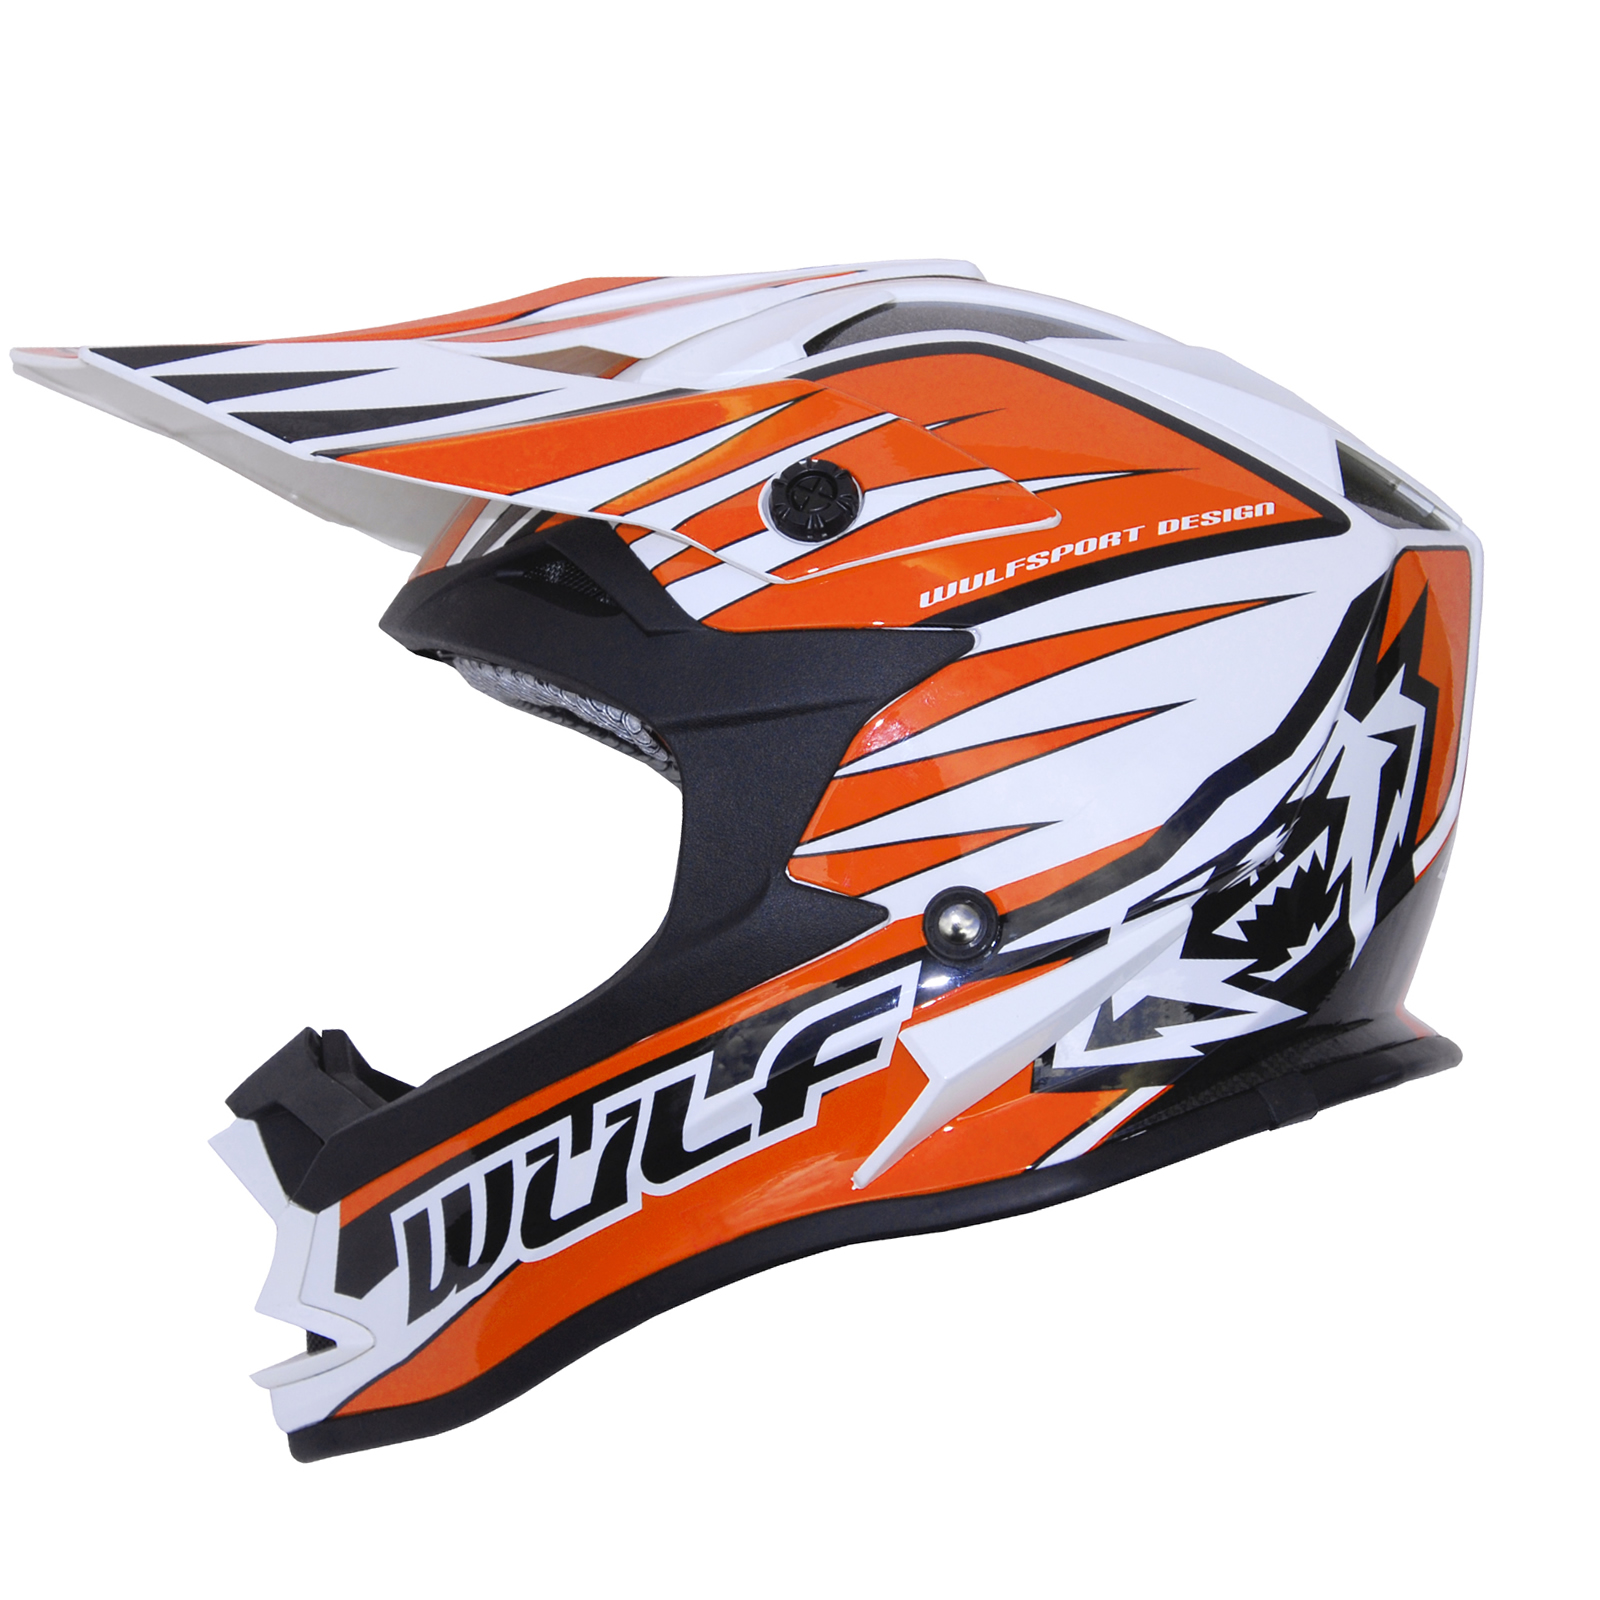 wulfsport advance orange white black motocross helmet. Black Bedroom Furniture Sets. Home Design Ideas